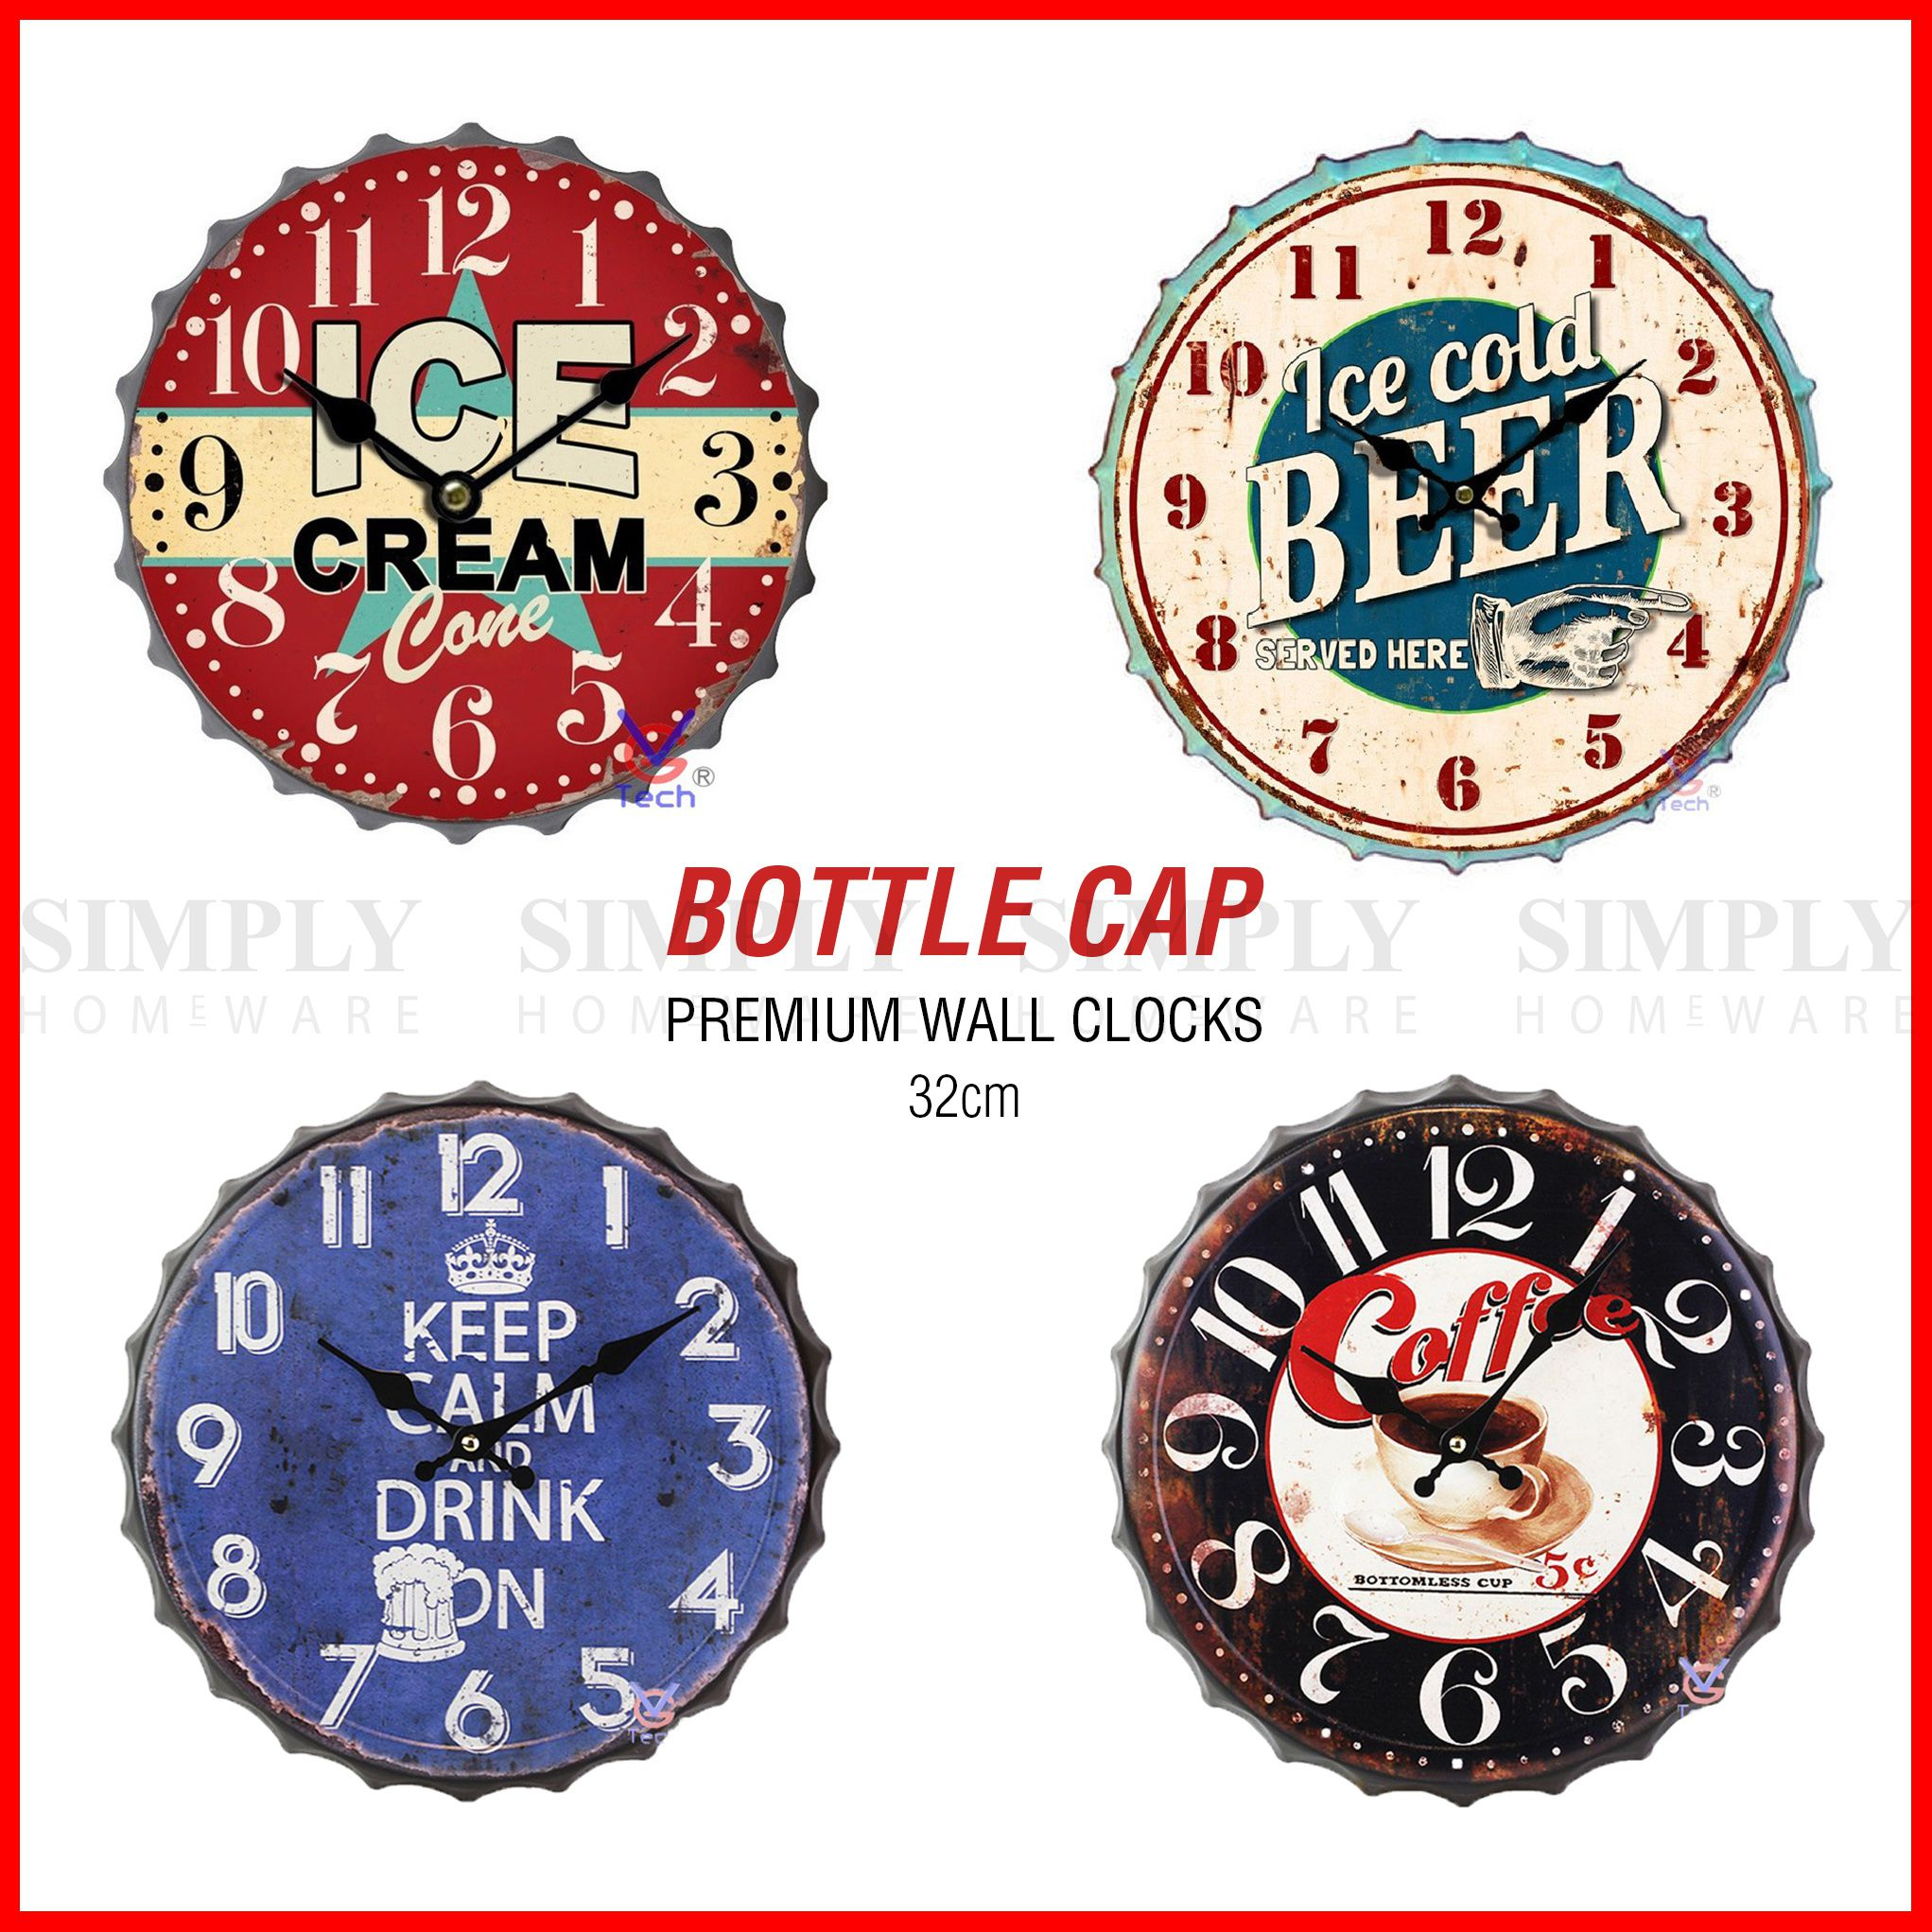 Vintage Retro Wall Clock Metal Bottle Cap Silent Shabby Chic Rustic Kitchen 32cm